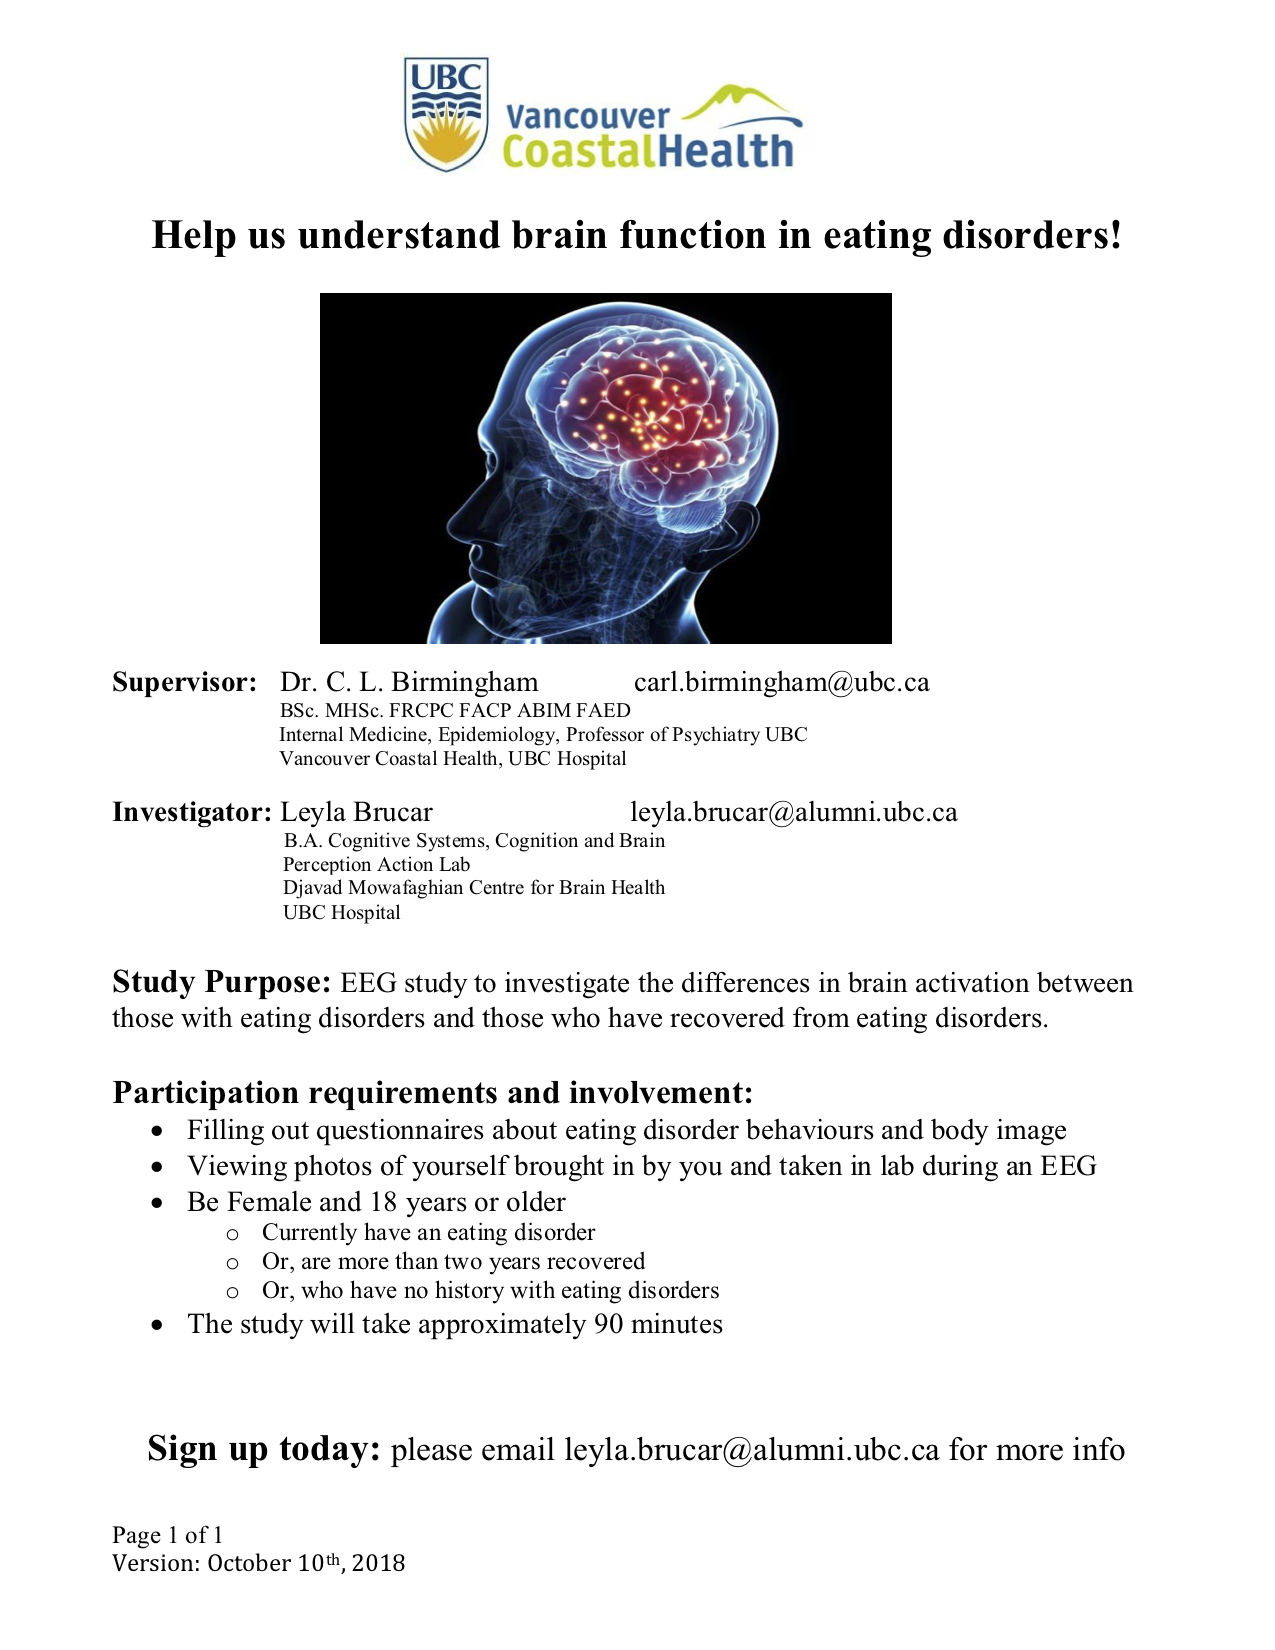 Eating disorder study